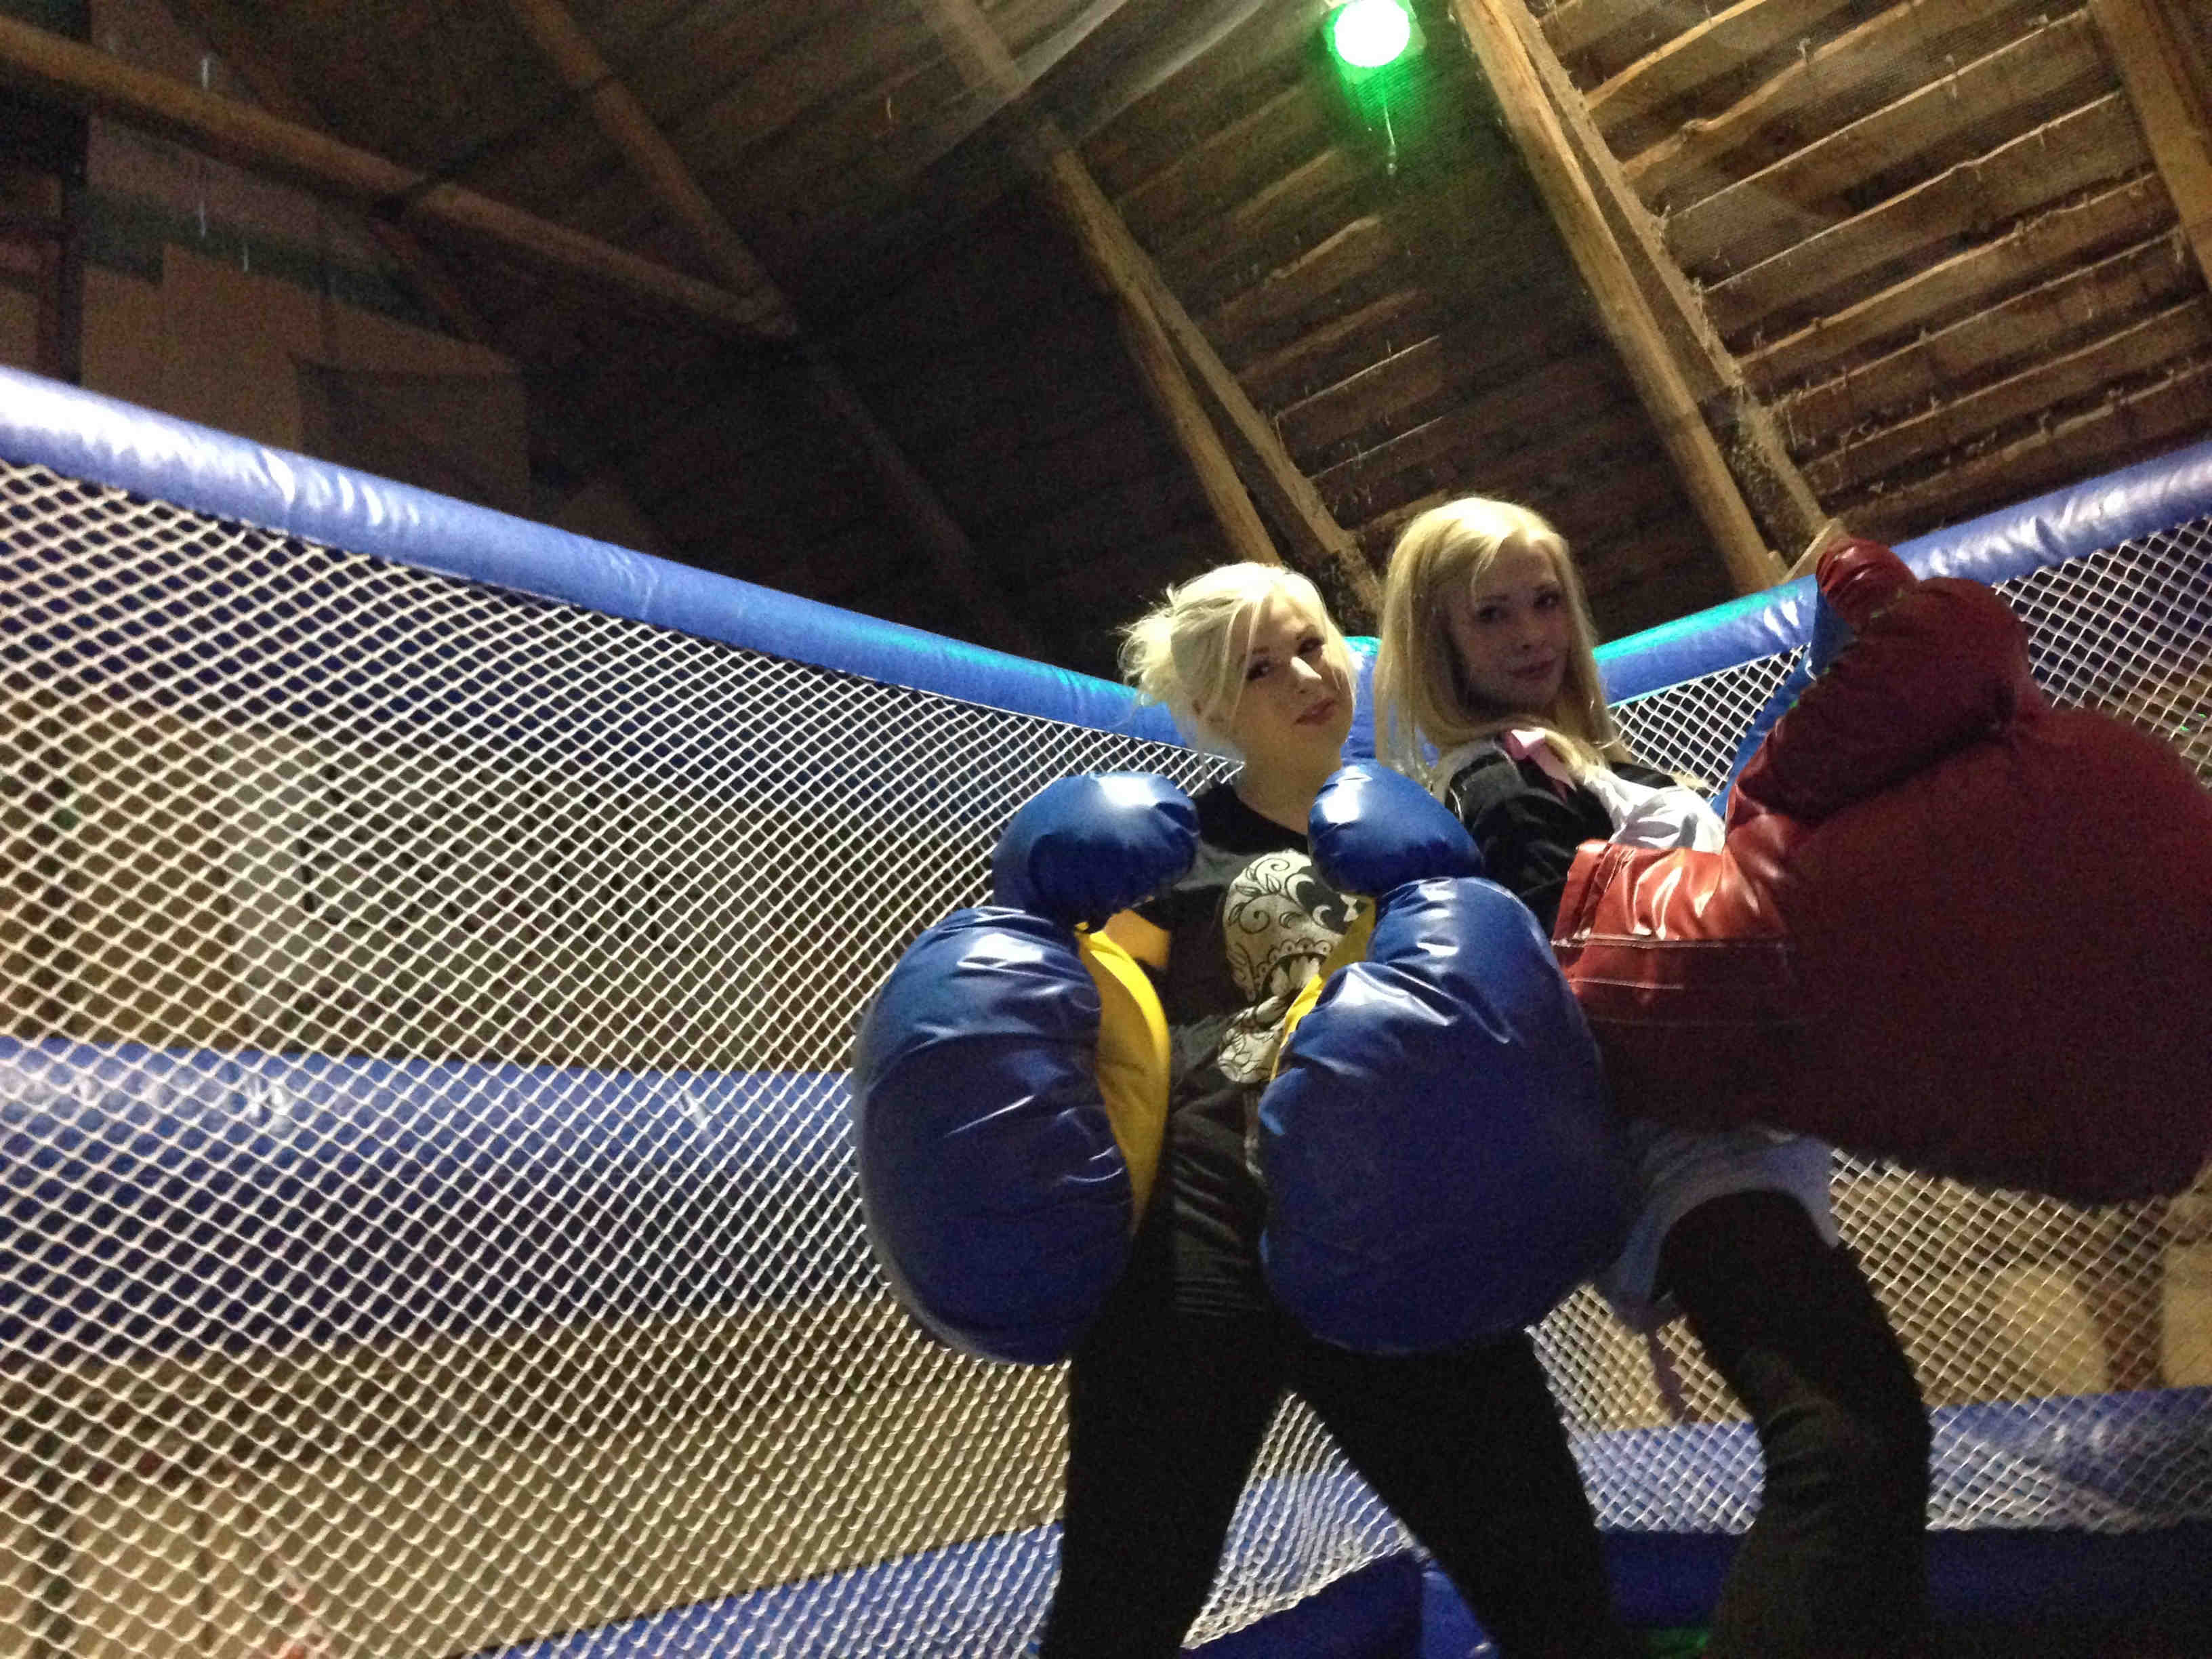 Bouncy Boxing CampExtreme i Jönköping (1)